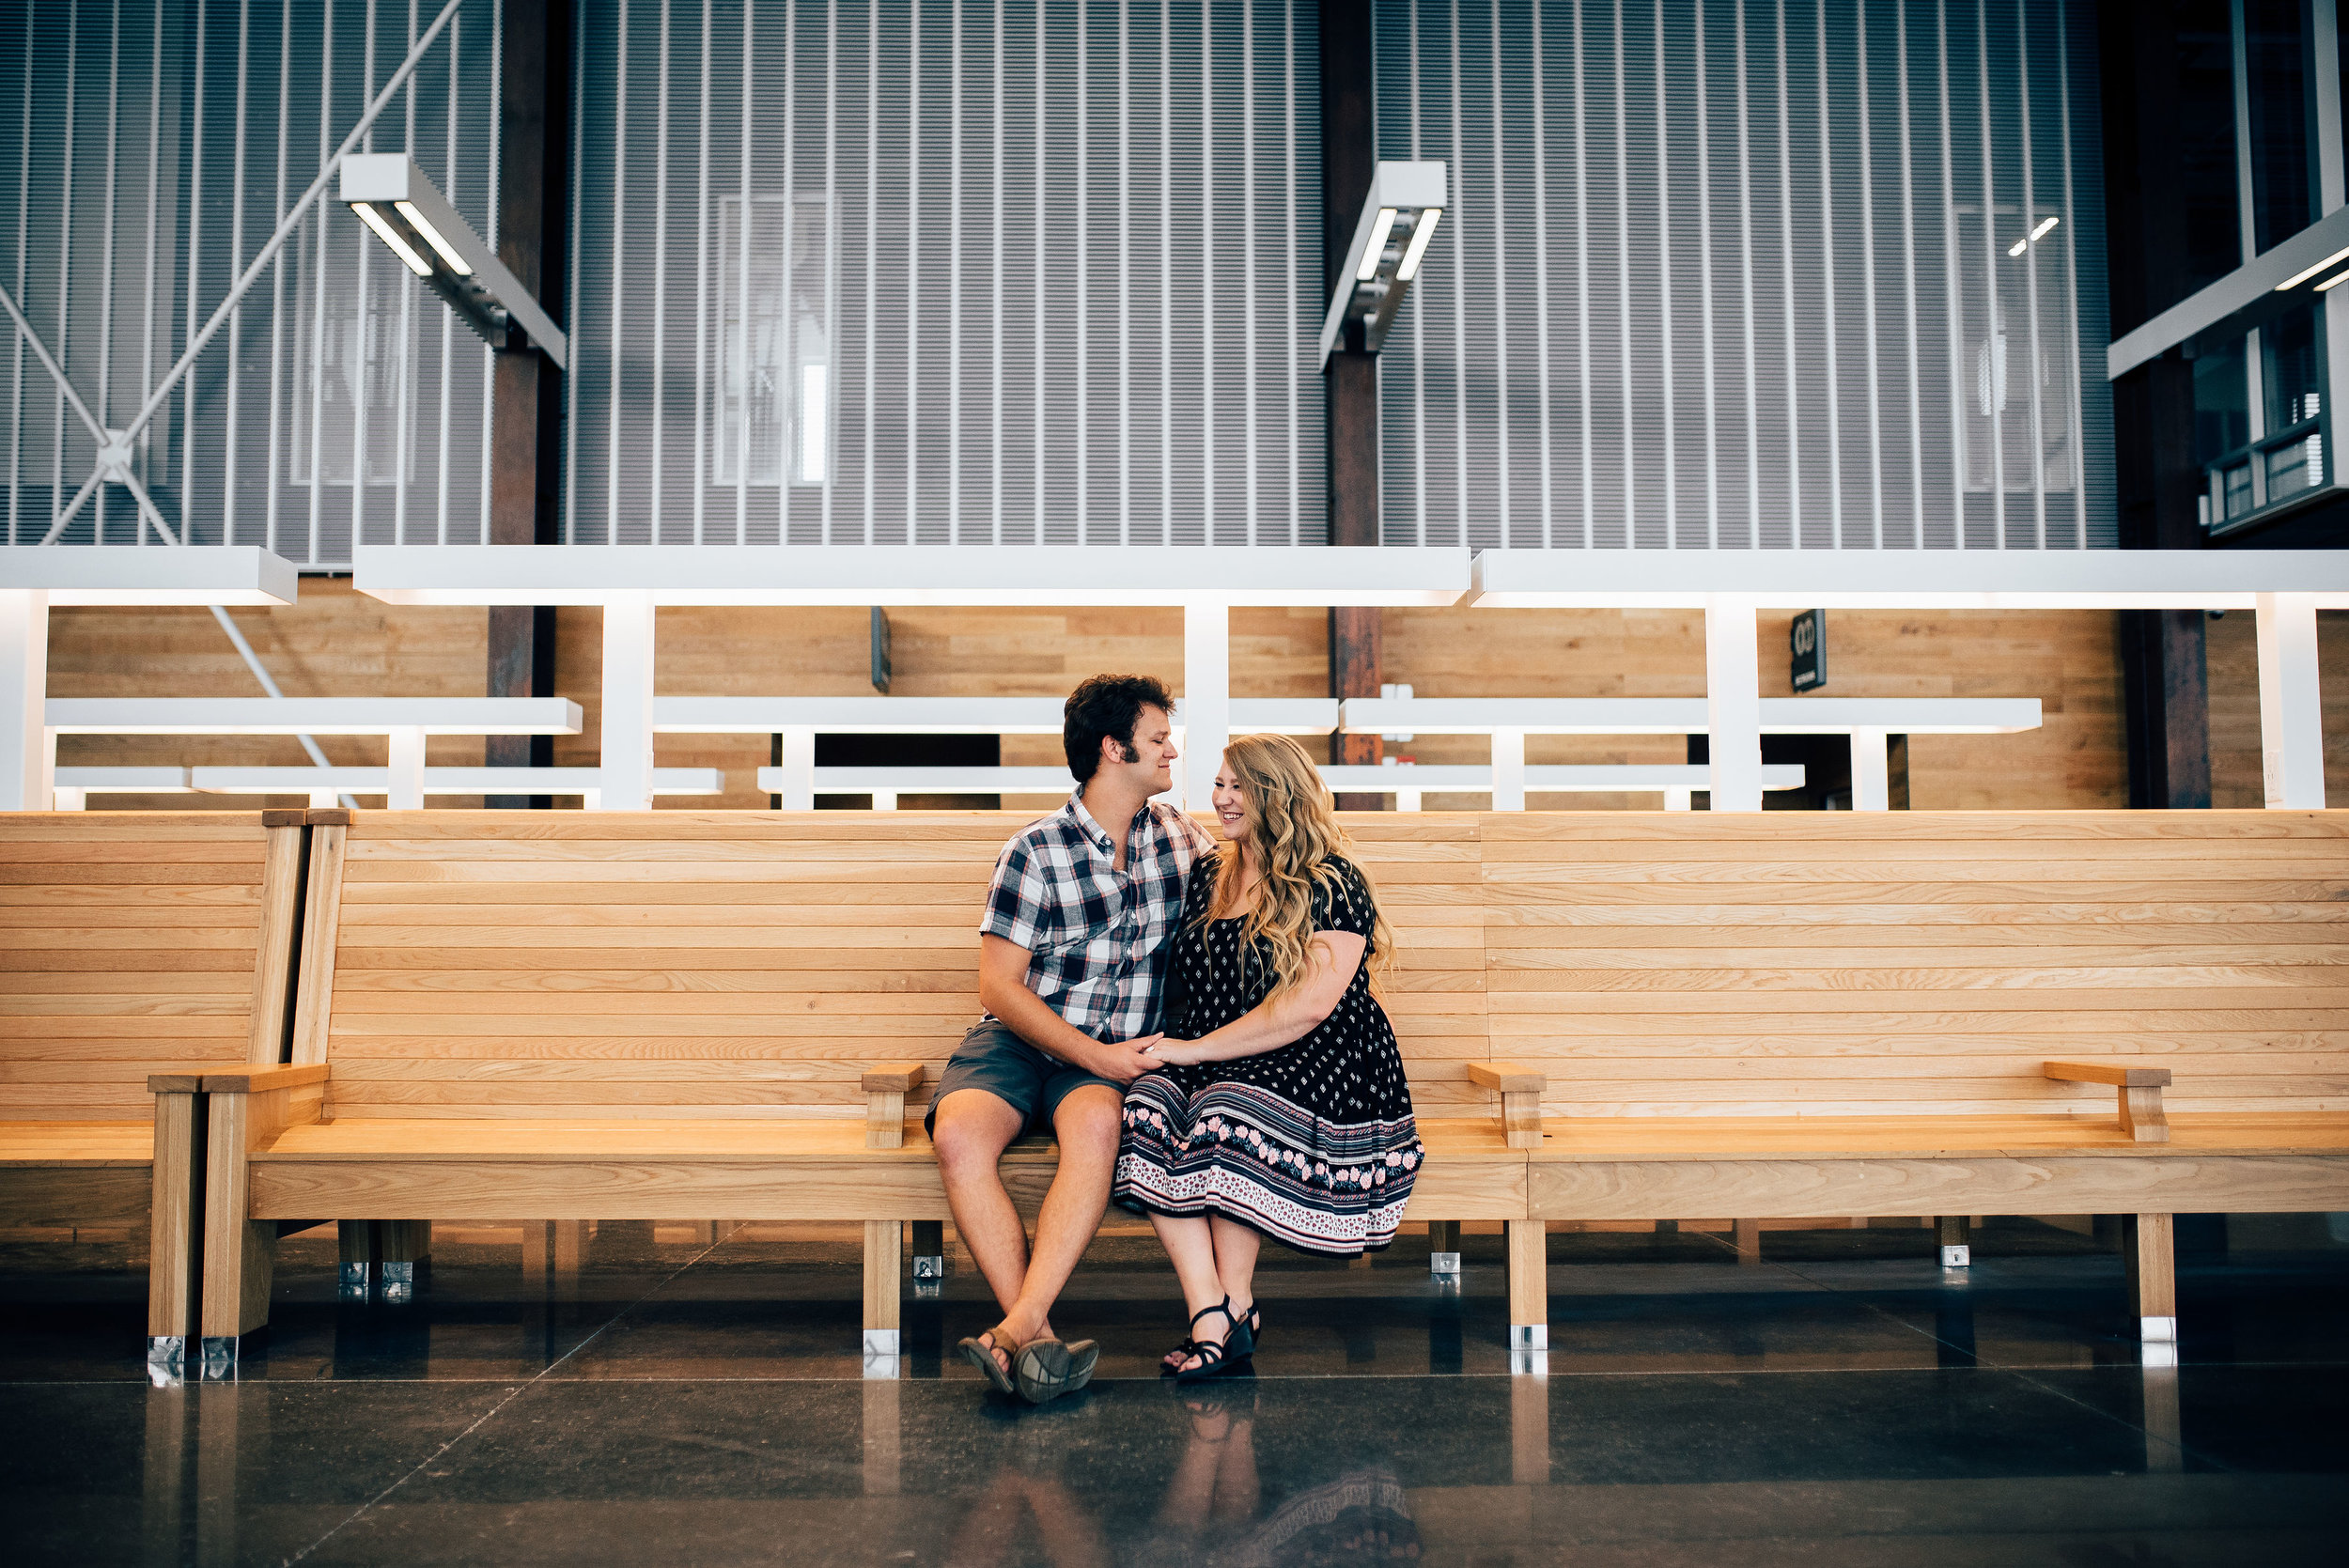 Raleigh Union Station - Raleigh Engagement Photographer - North Carolina Wedding Photographer